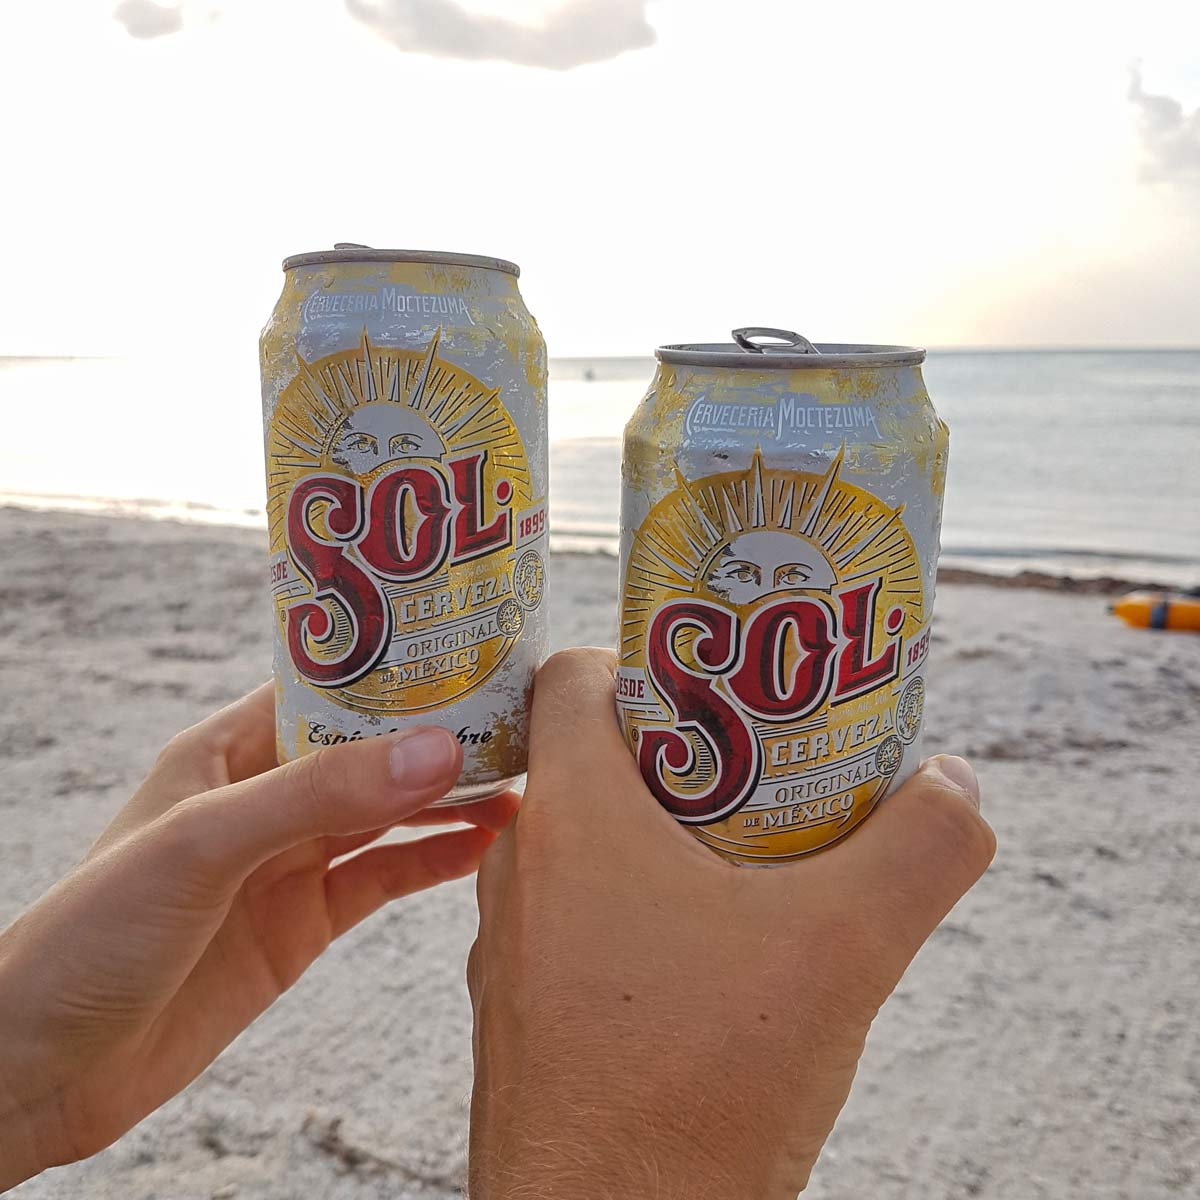 Sol Beer in Holbox